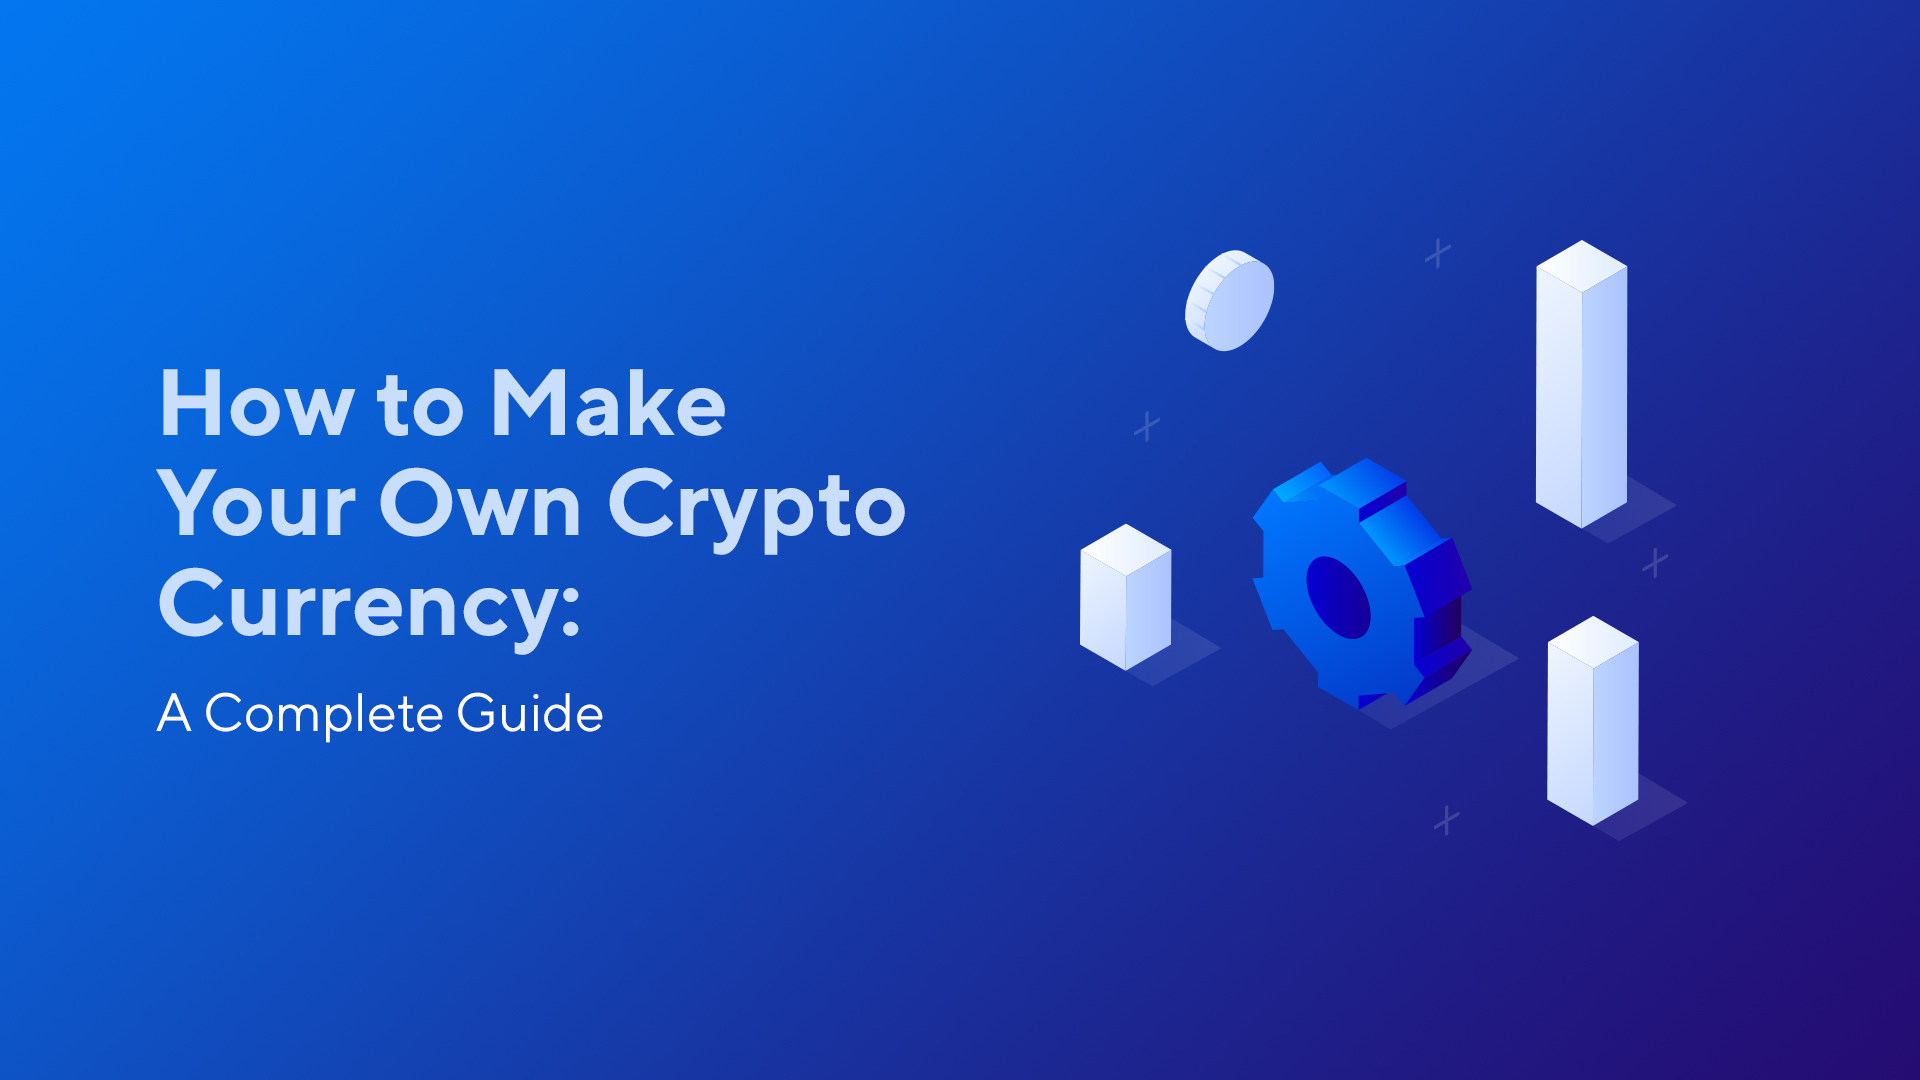 How to Make Your Own Crypto Currency: A Complete Guide